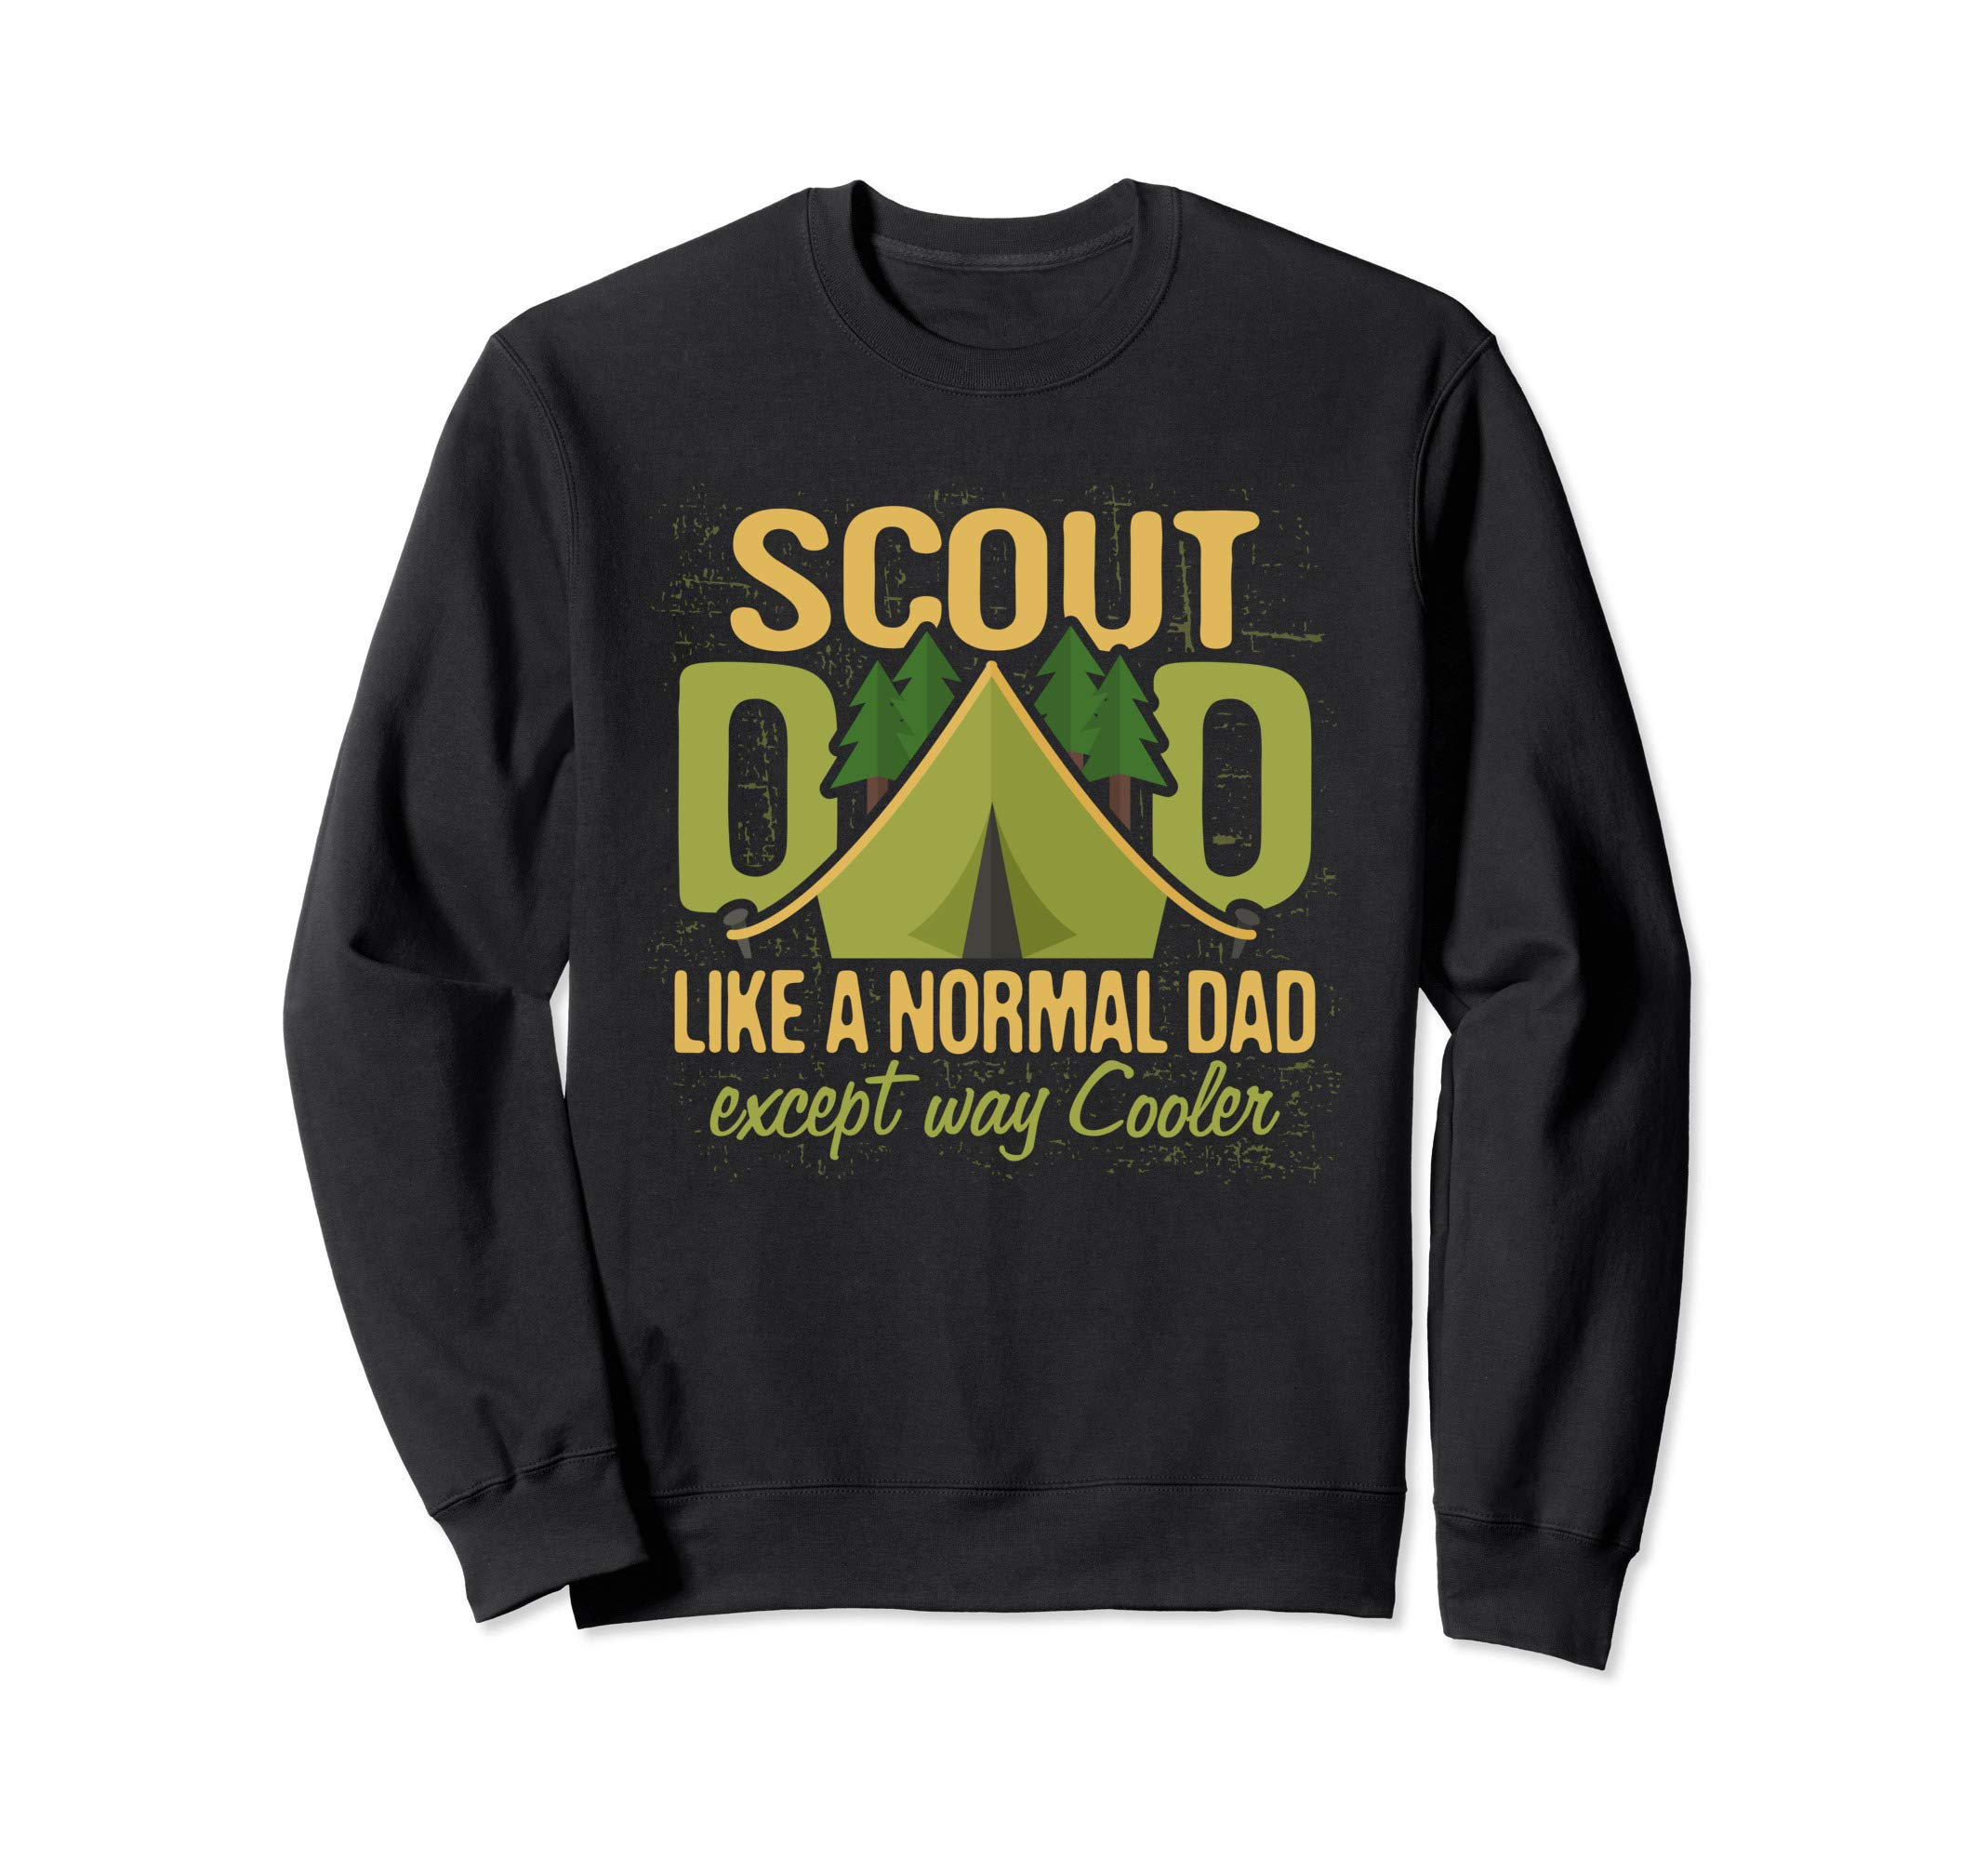 Scout Dad Cub Leader Boy Camping Scouting Troop Den Gift Men Sweatshirt by Scouting Shirts By Ark